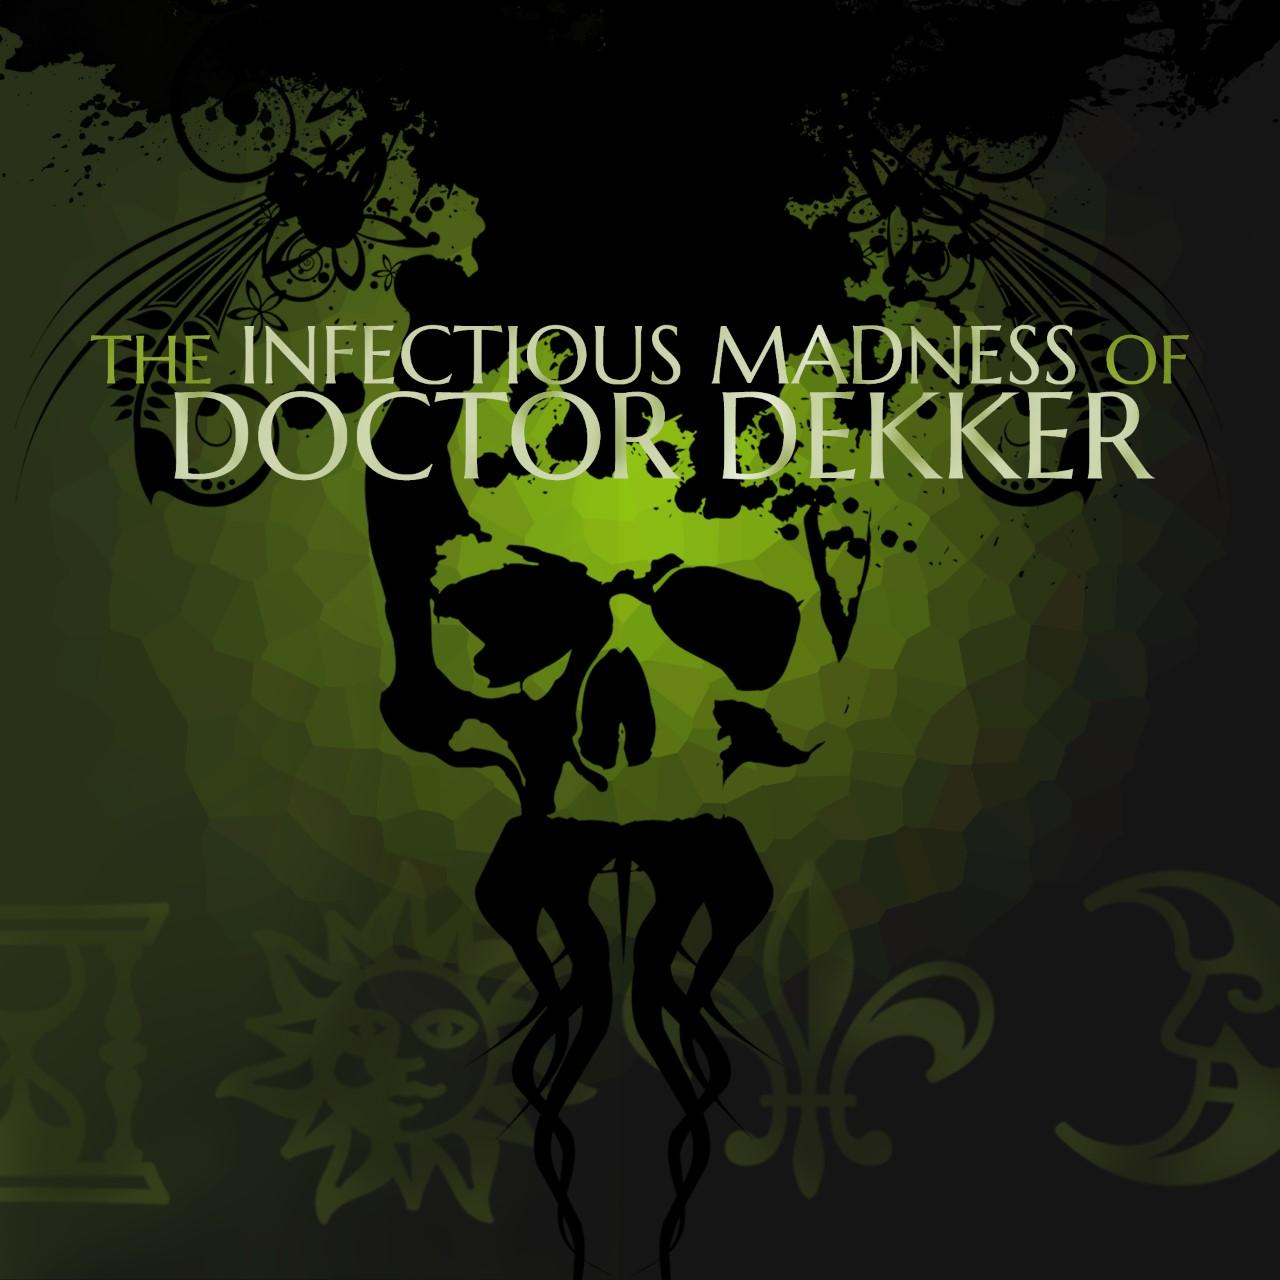 The Infectious Madness of Doctor Dekker выйдет на консоли